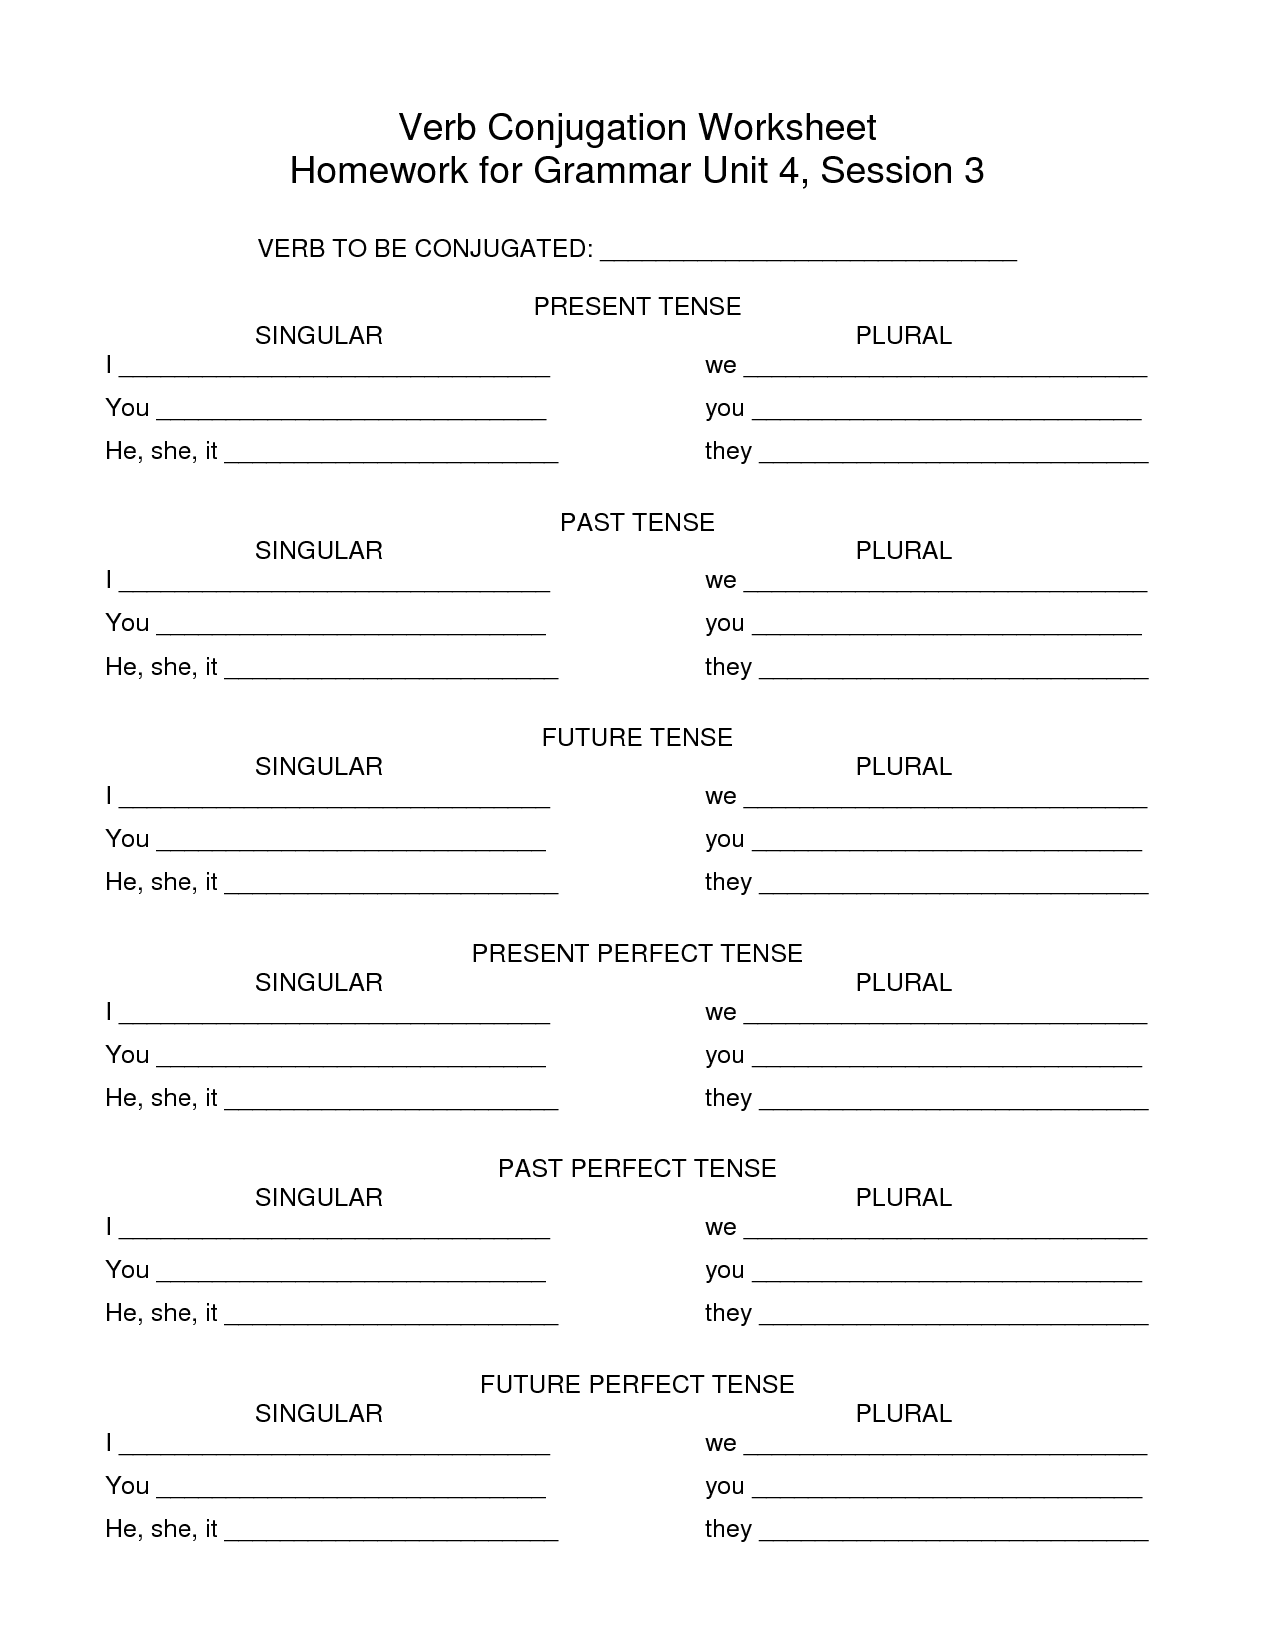 Present Tense Verb Worksheets In Spanish